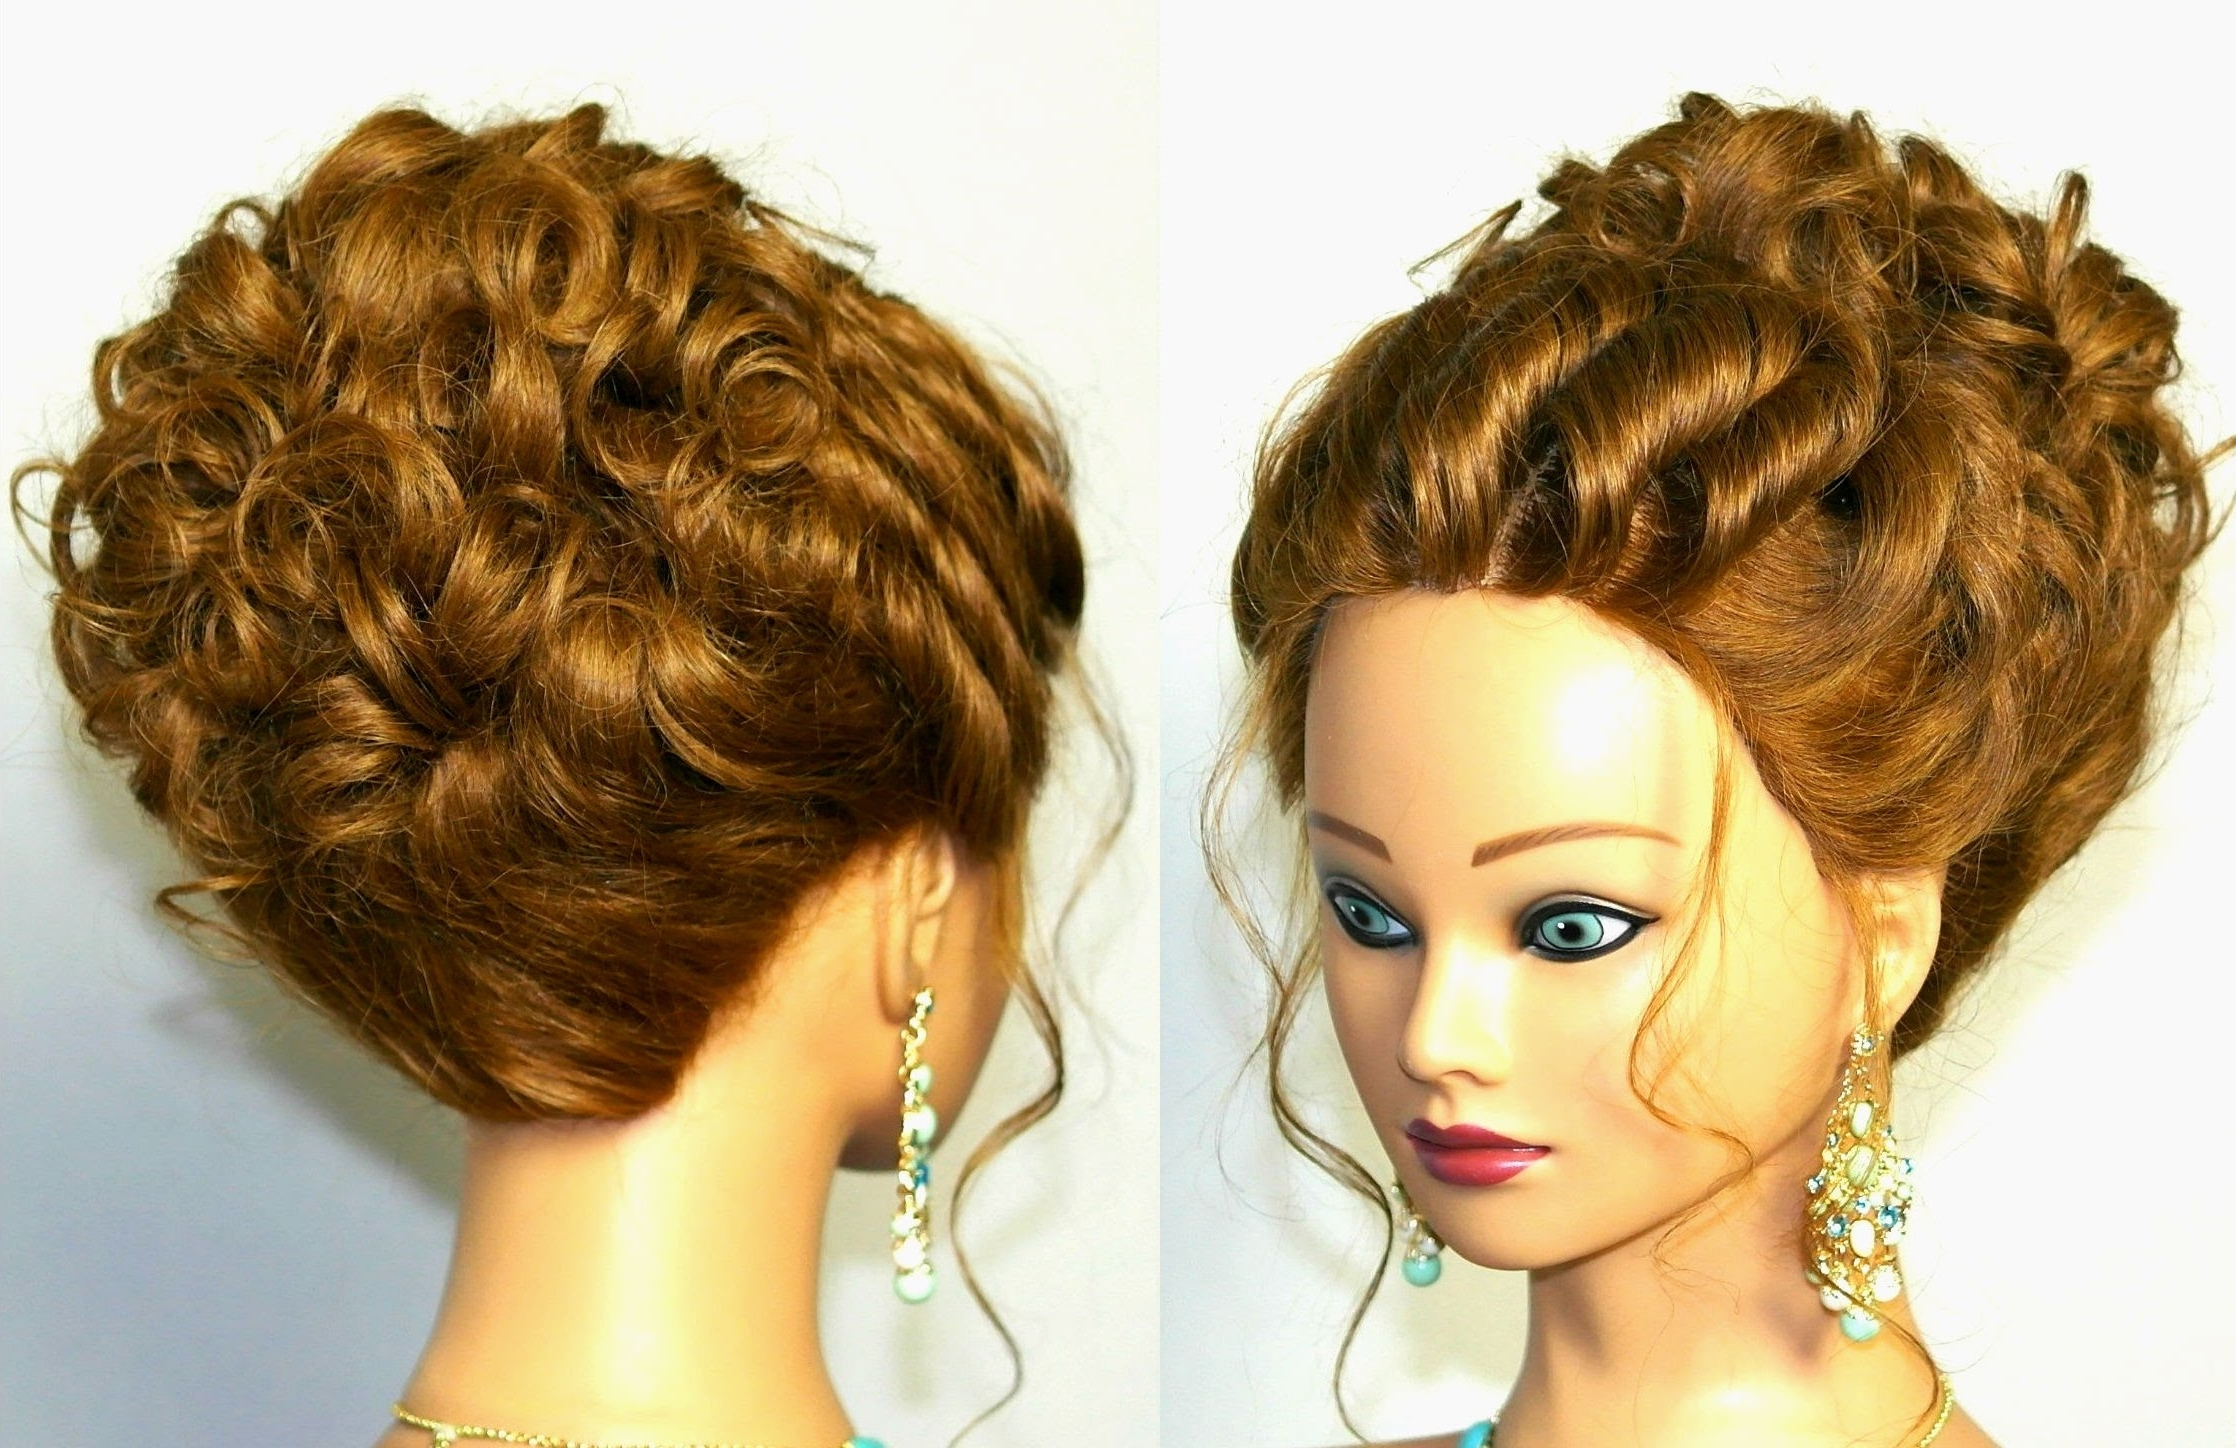 Preferred Wedding Hairstyles For Long Romantic Hair For Wedding Hairstyle For Medium Long Hair (View 11 of 15)